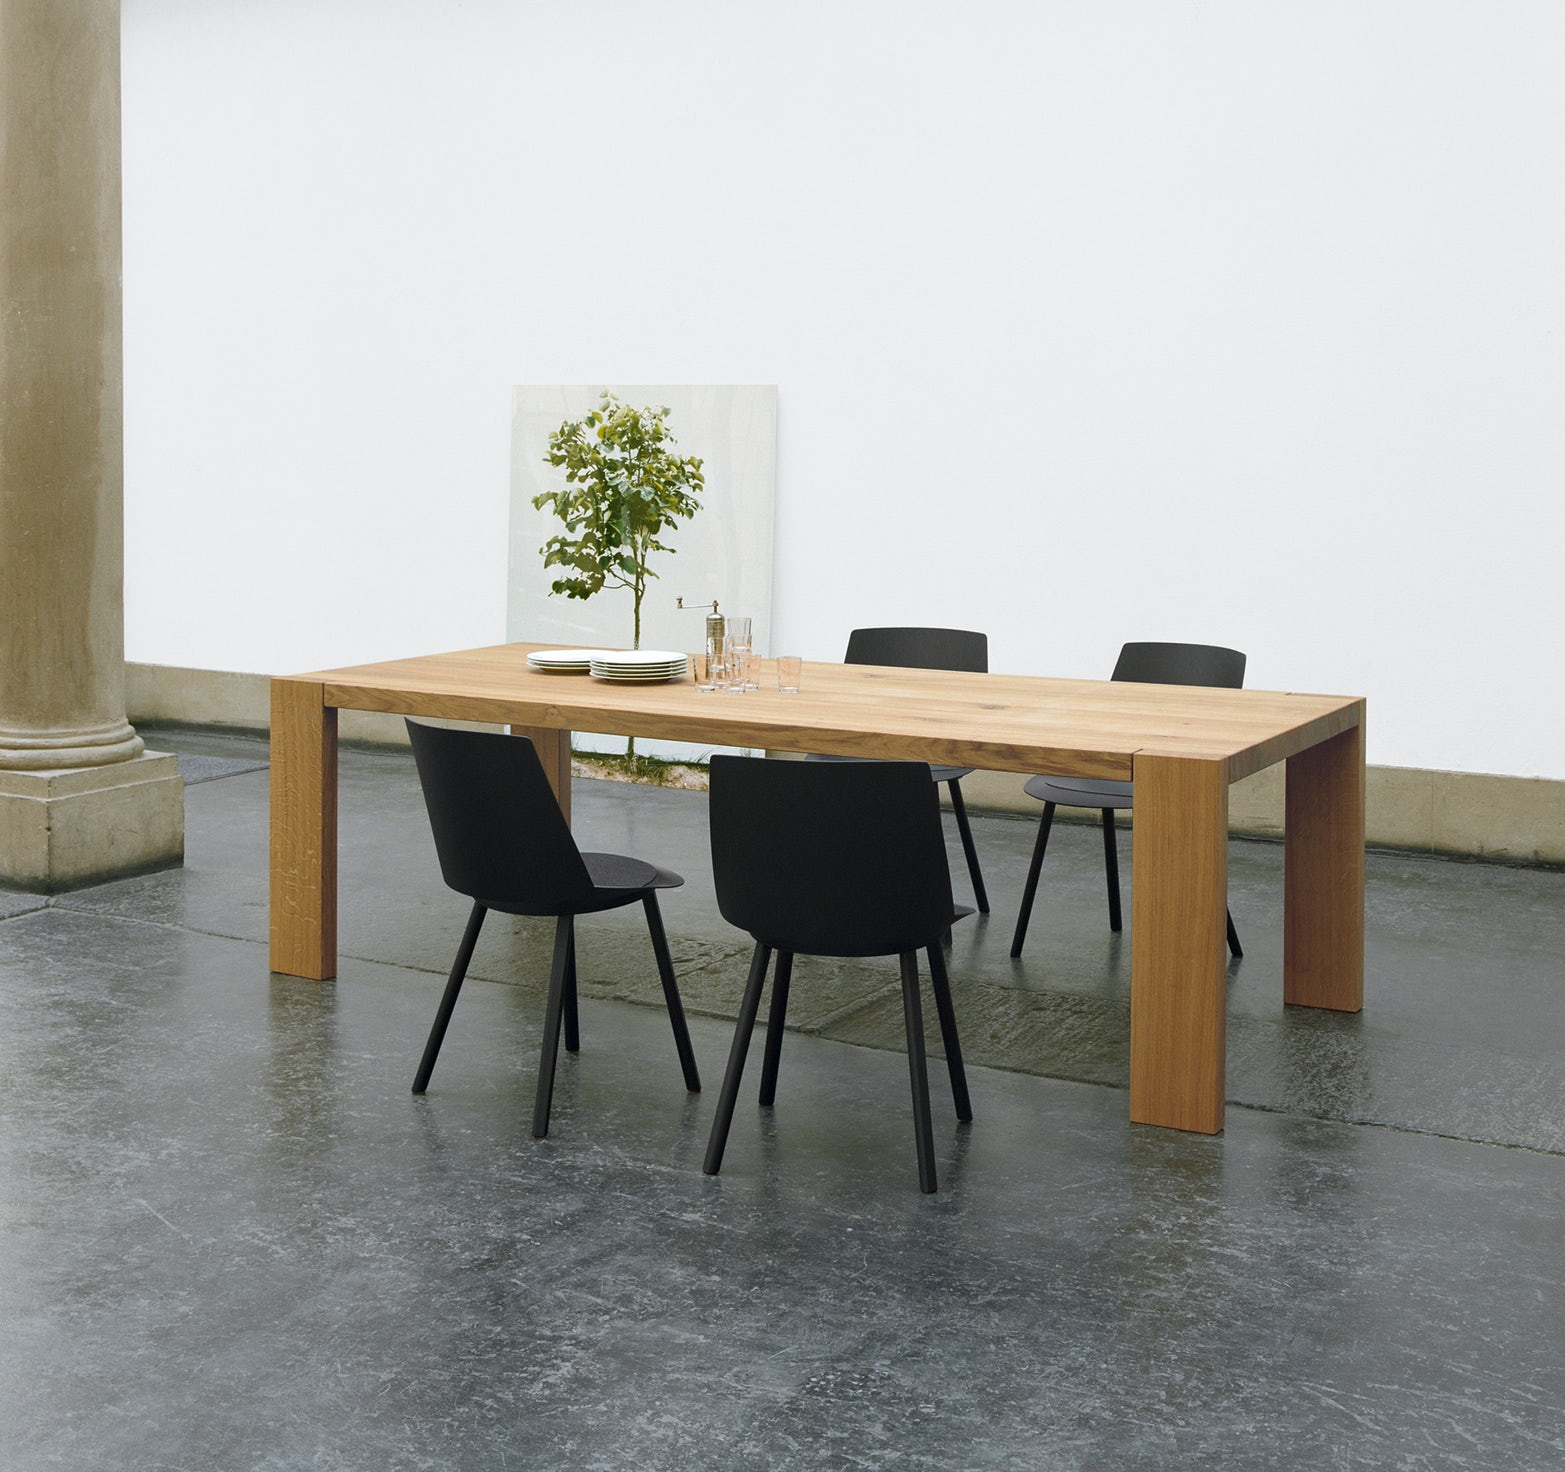 e15 london table with houdini side chair in black